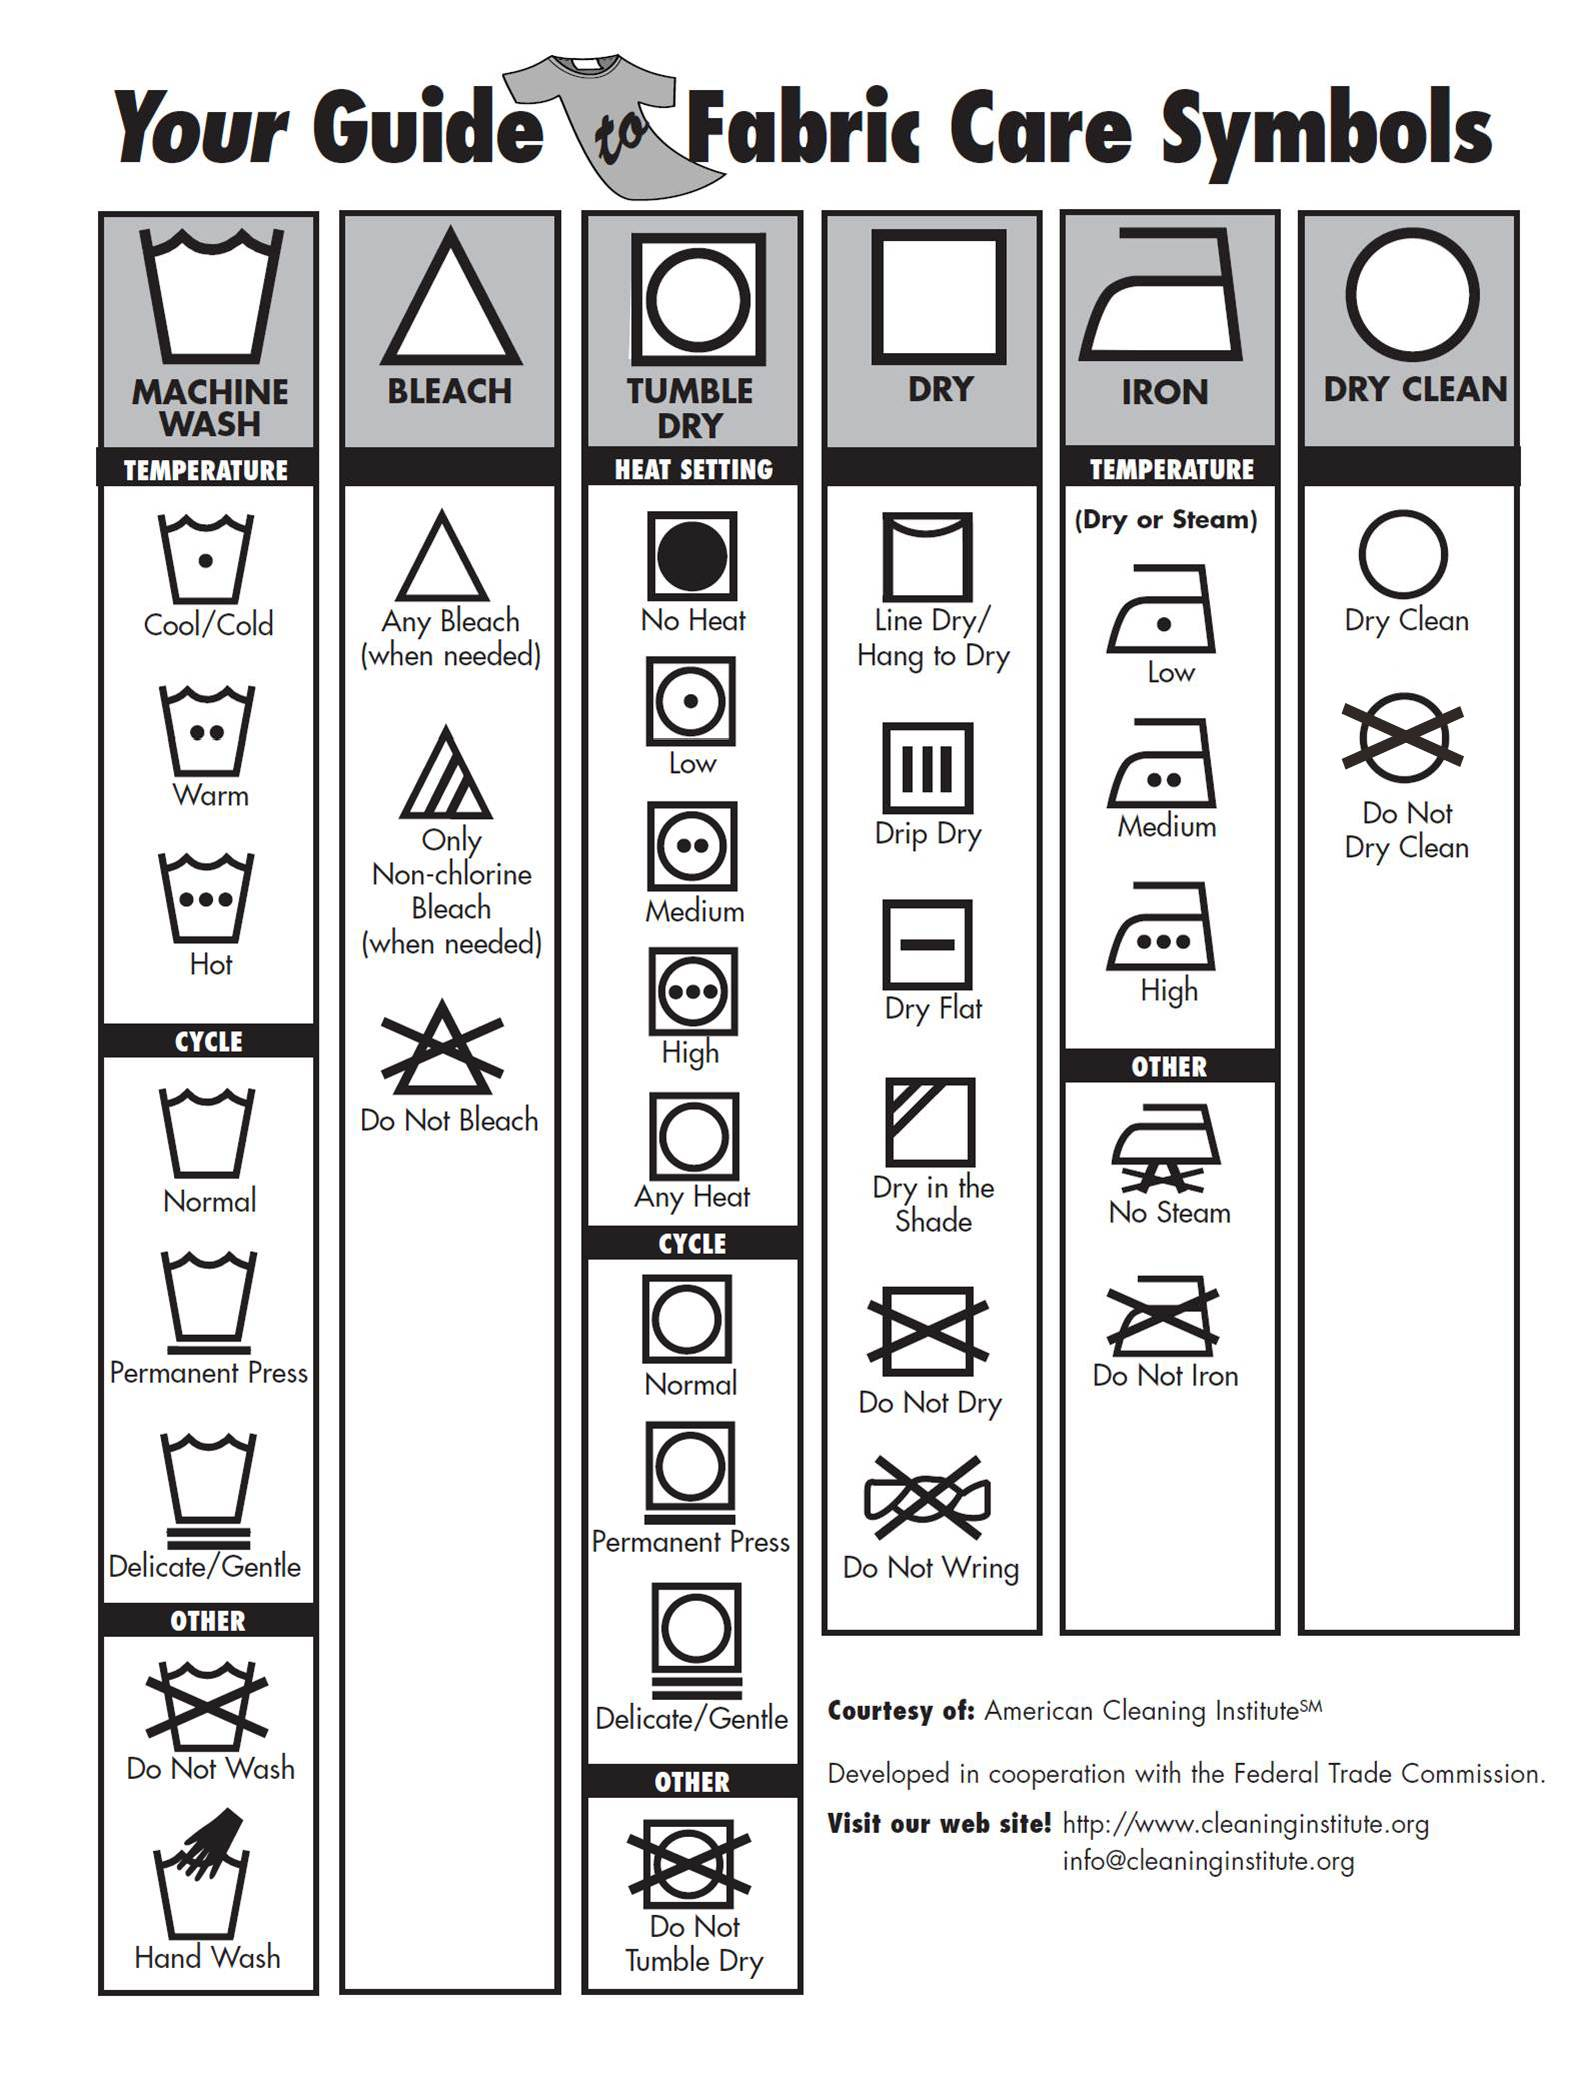 An easy-to-read image that explains all of the fabric care symbols on clothing care labels. (Sometimes called